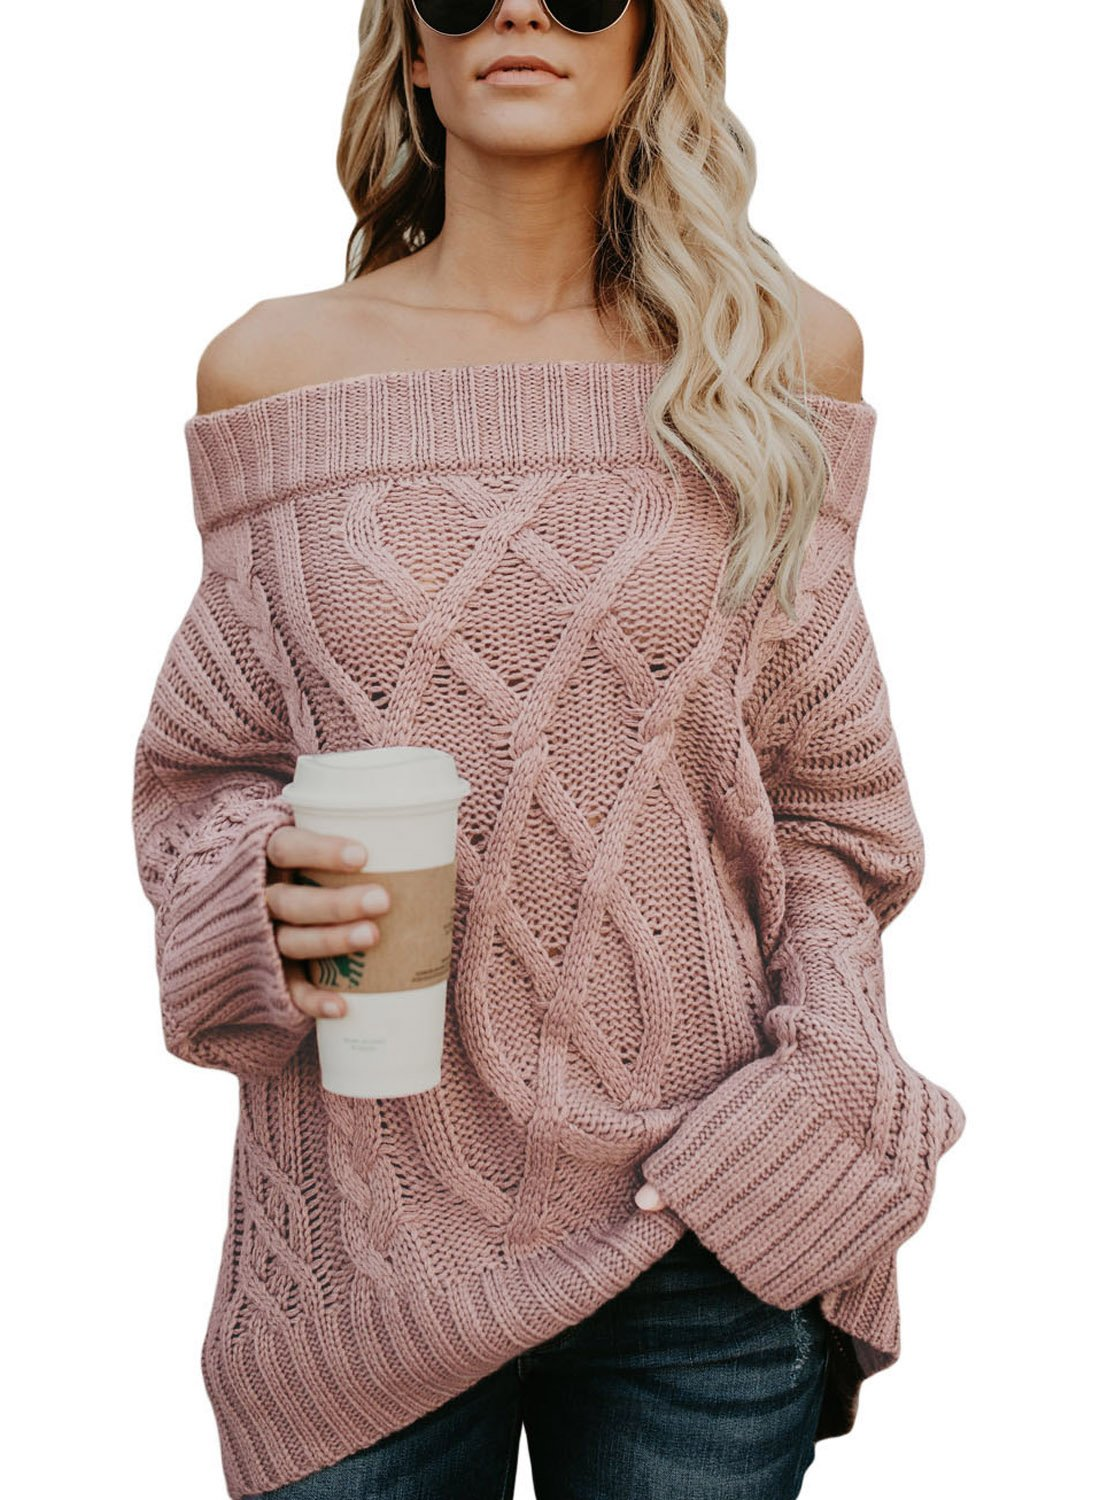 ROSKIKI Womens Long Sleeve Off The Shoulder Winter Warm Batwing Baggy Knited Pullover Sweaters Tops Pink S